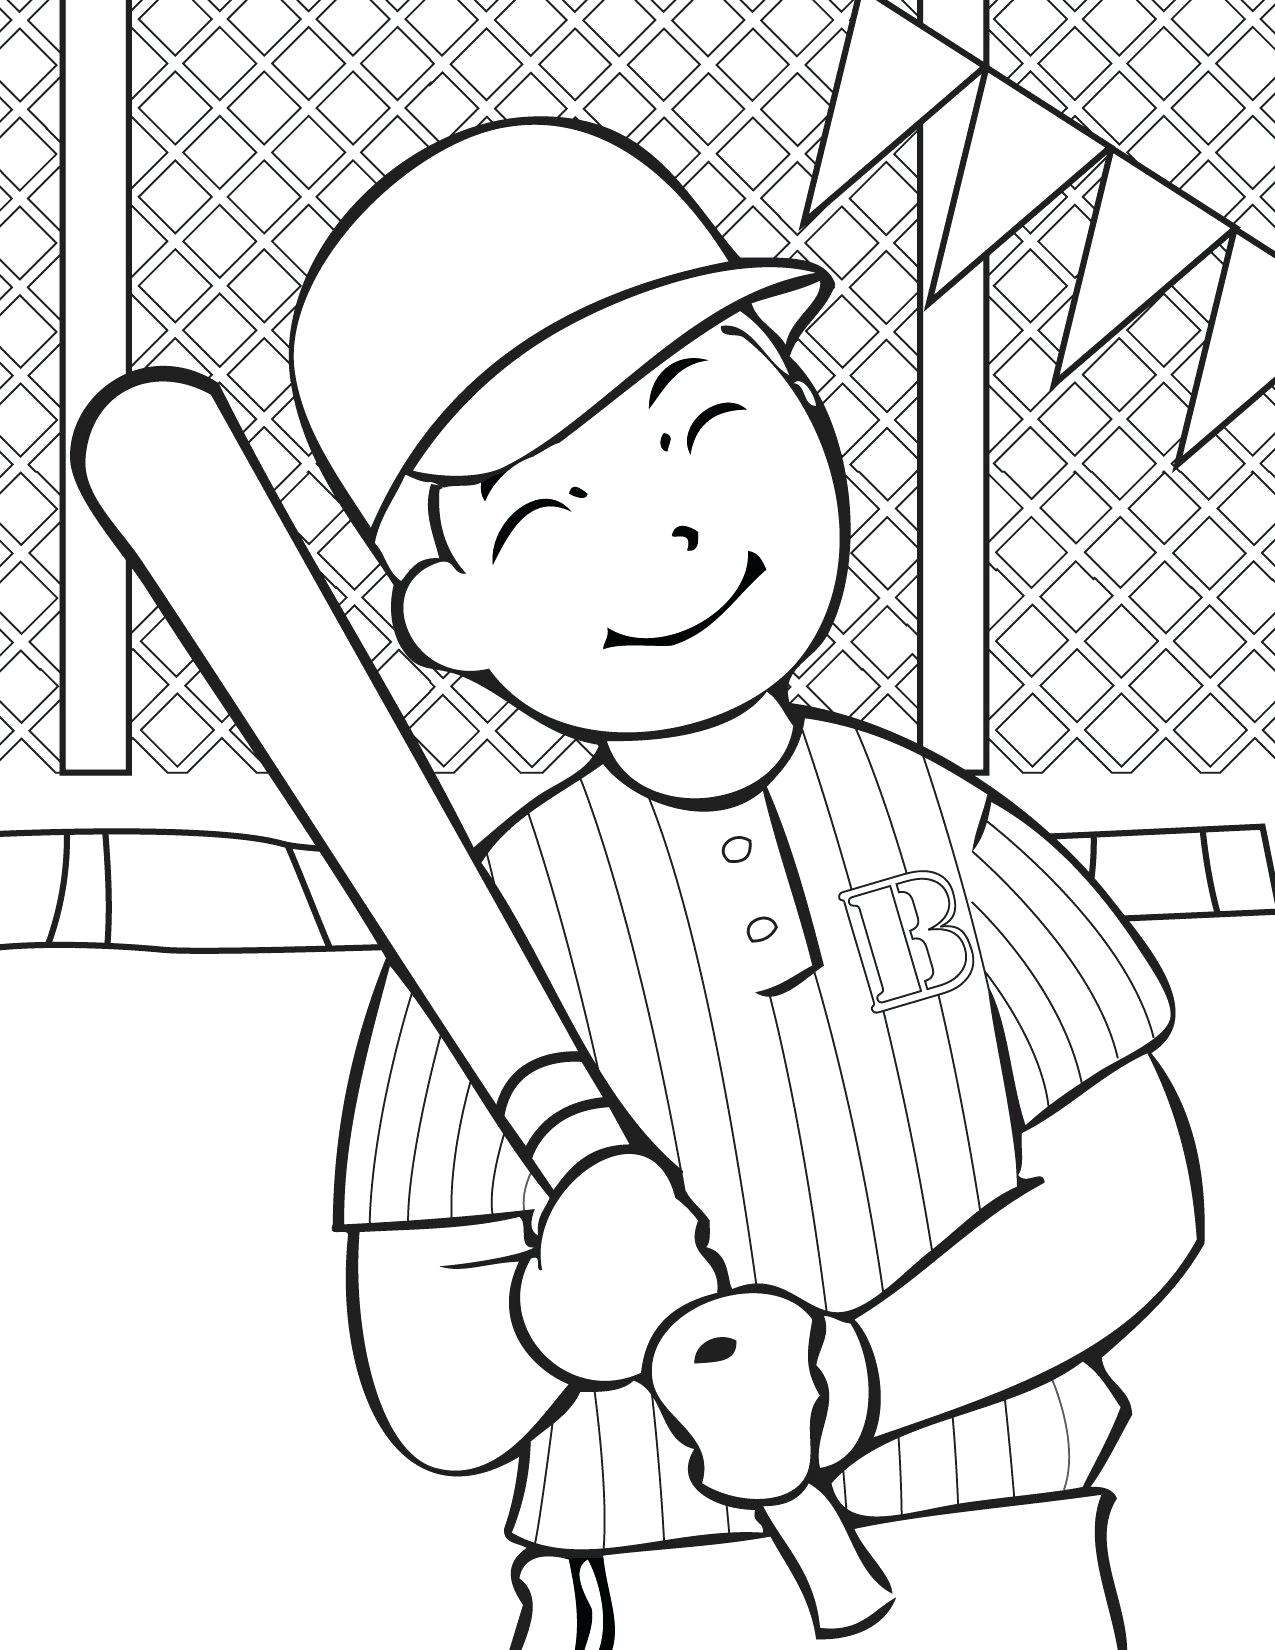 1275x1650 Coloring Pages Hockey Stick 76 Outstanding Page Online Field